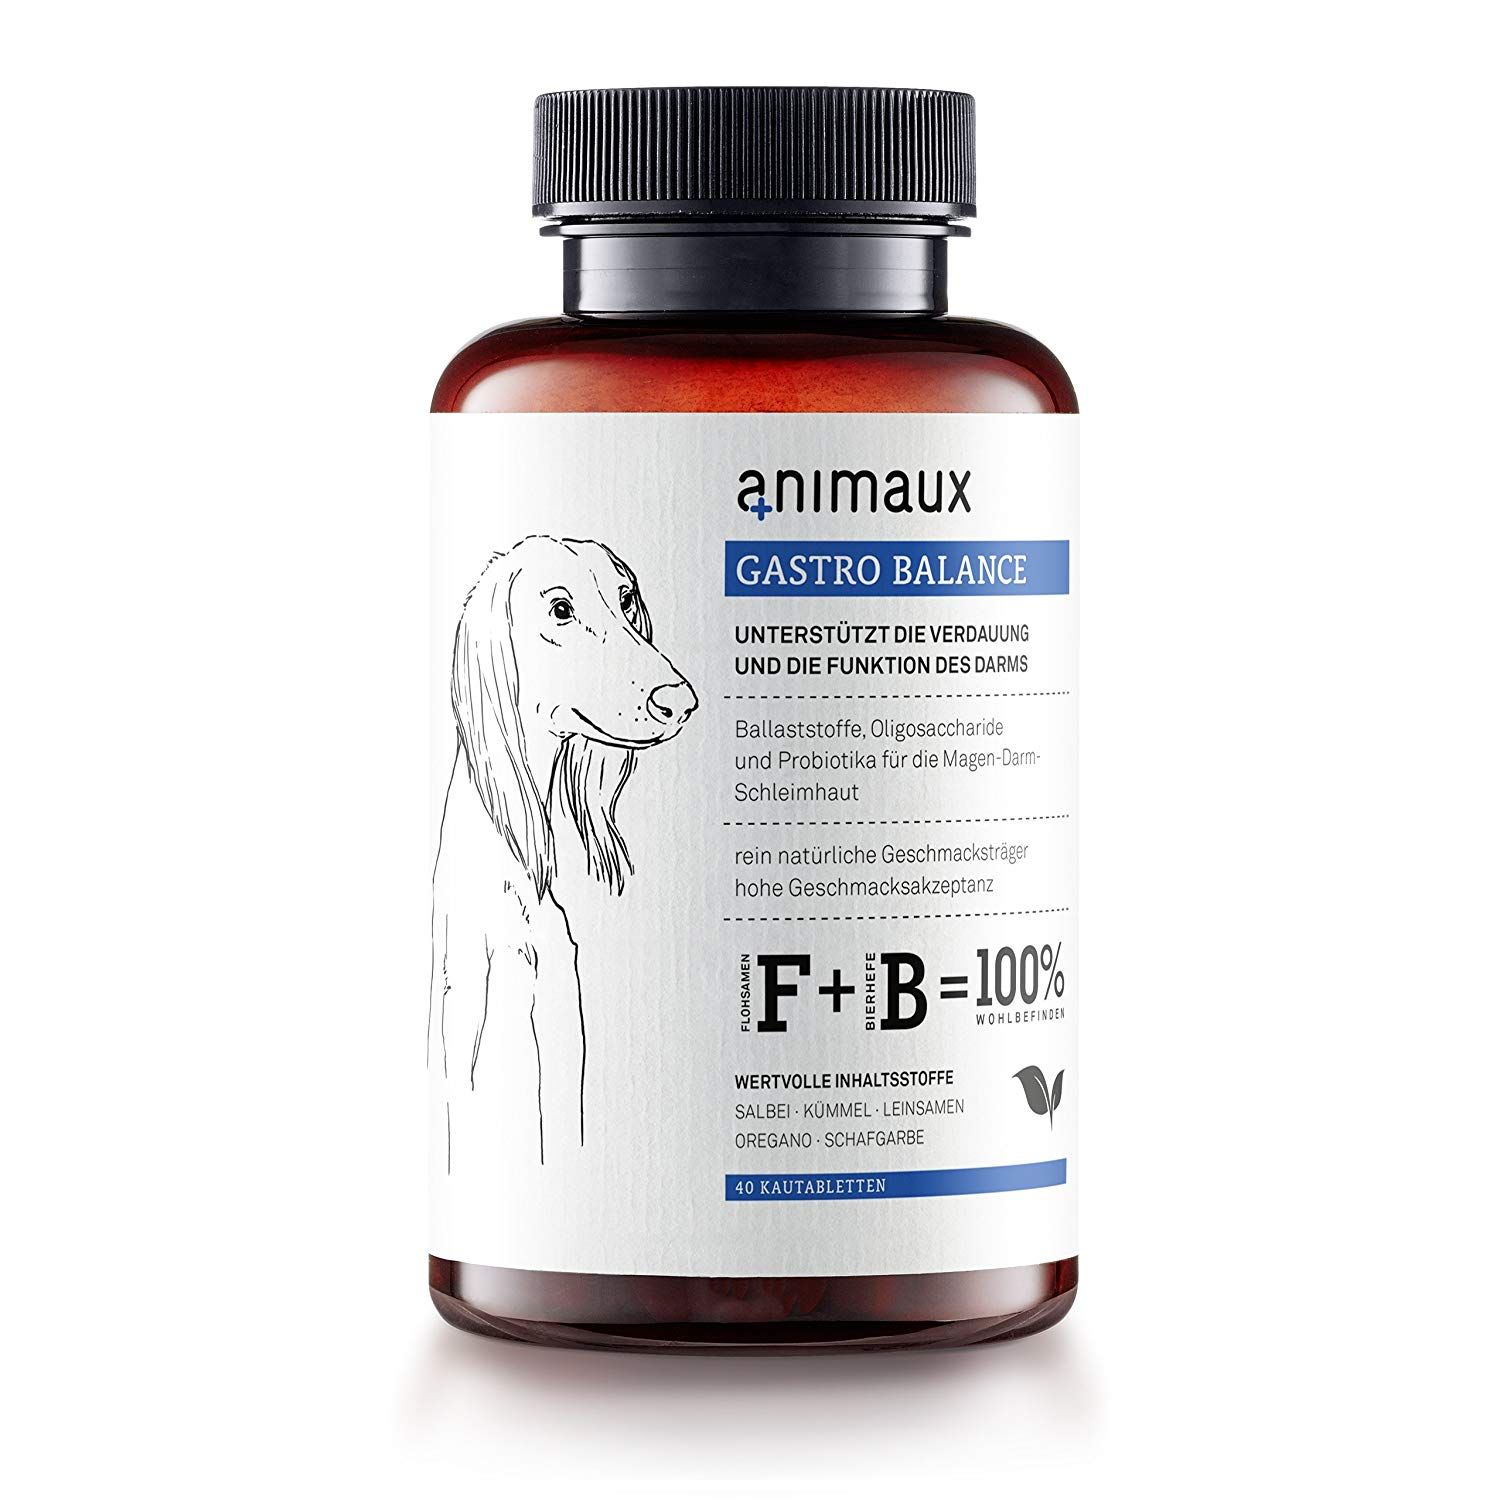 Animaux Gastro Balance For Dogs Digestive Health Support And Probiotics Brewer S Yeast Psyllium Husks Fennel He Digestive Health Health Irritable Bowel